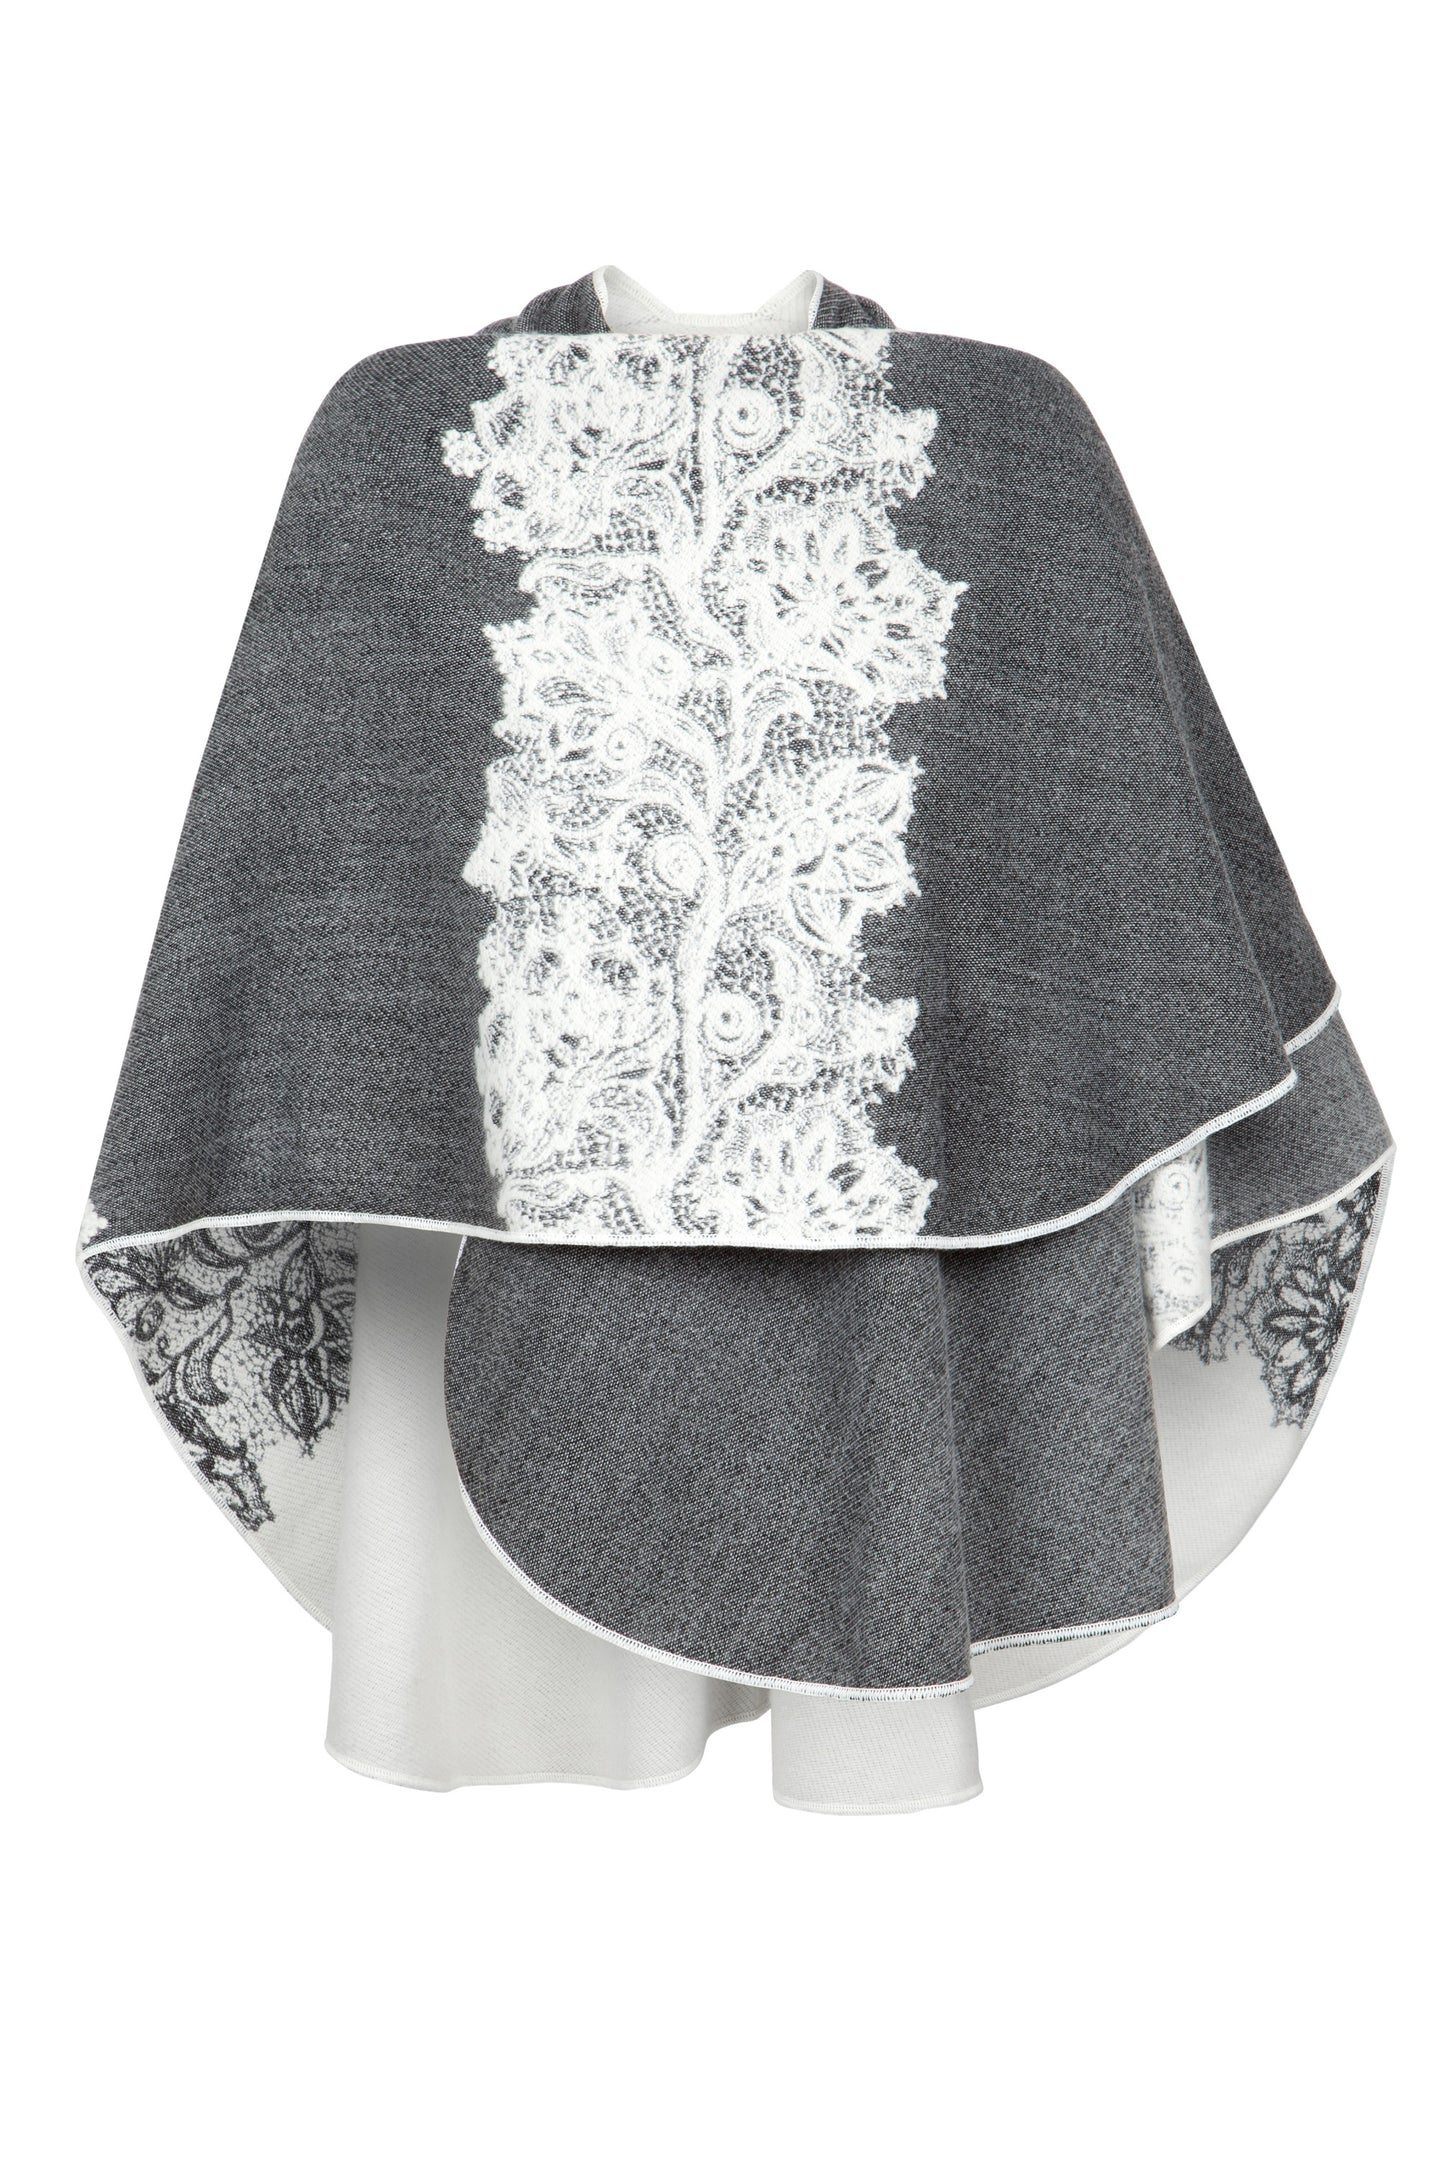 Shawl in Charcoal/Ivory with Floral